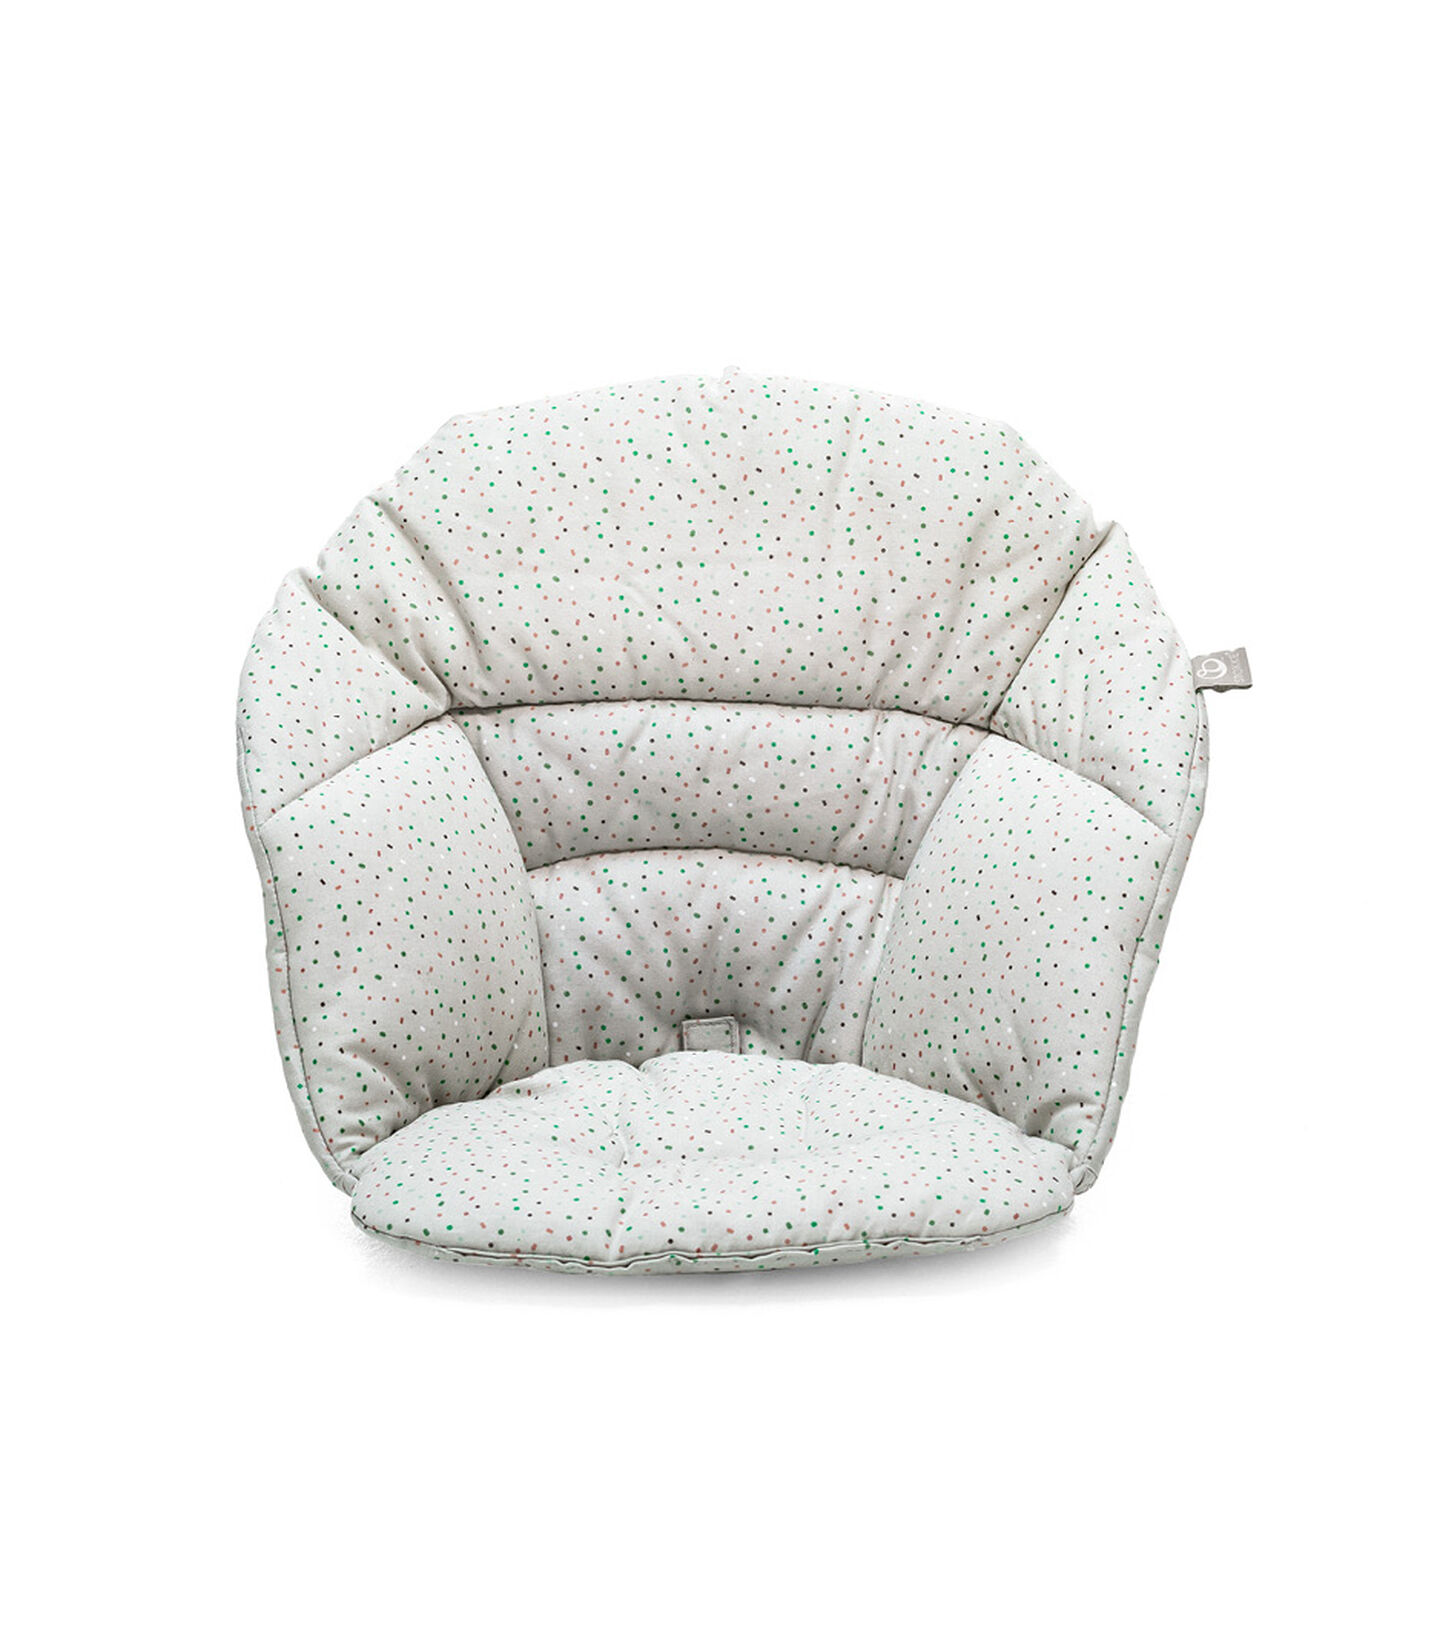 Stokke® Clikk™ Cushion Soft Grey Sprinkles, Grey Sprinkles, mainview view 2